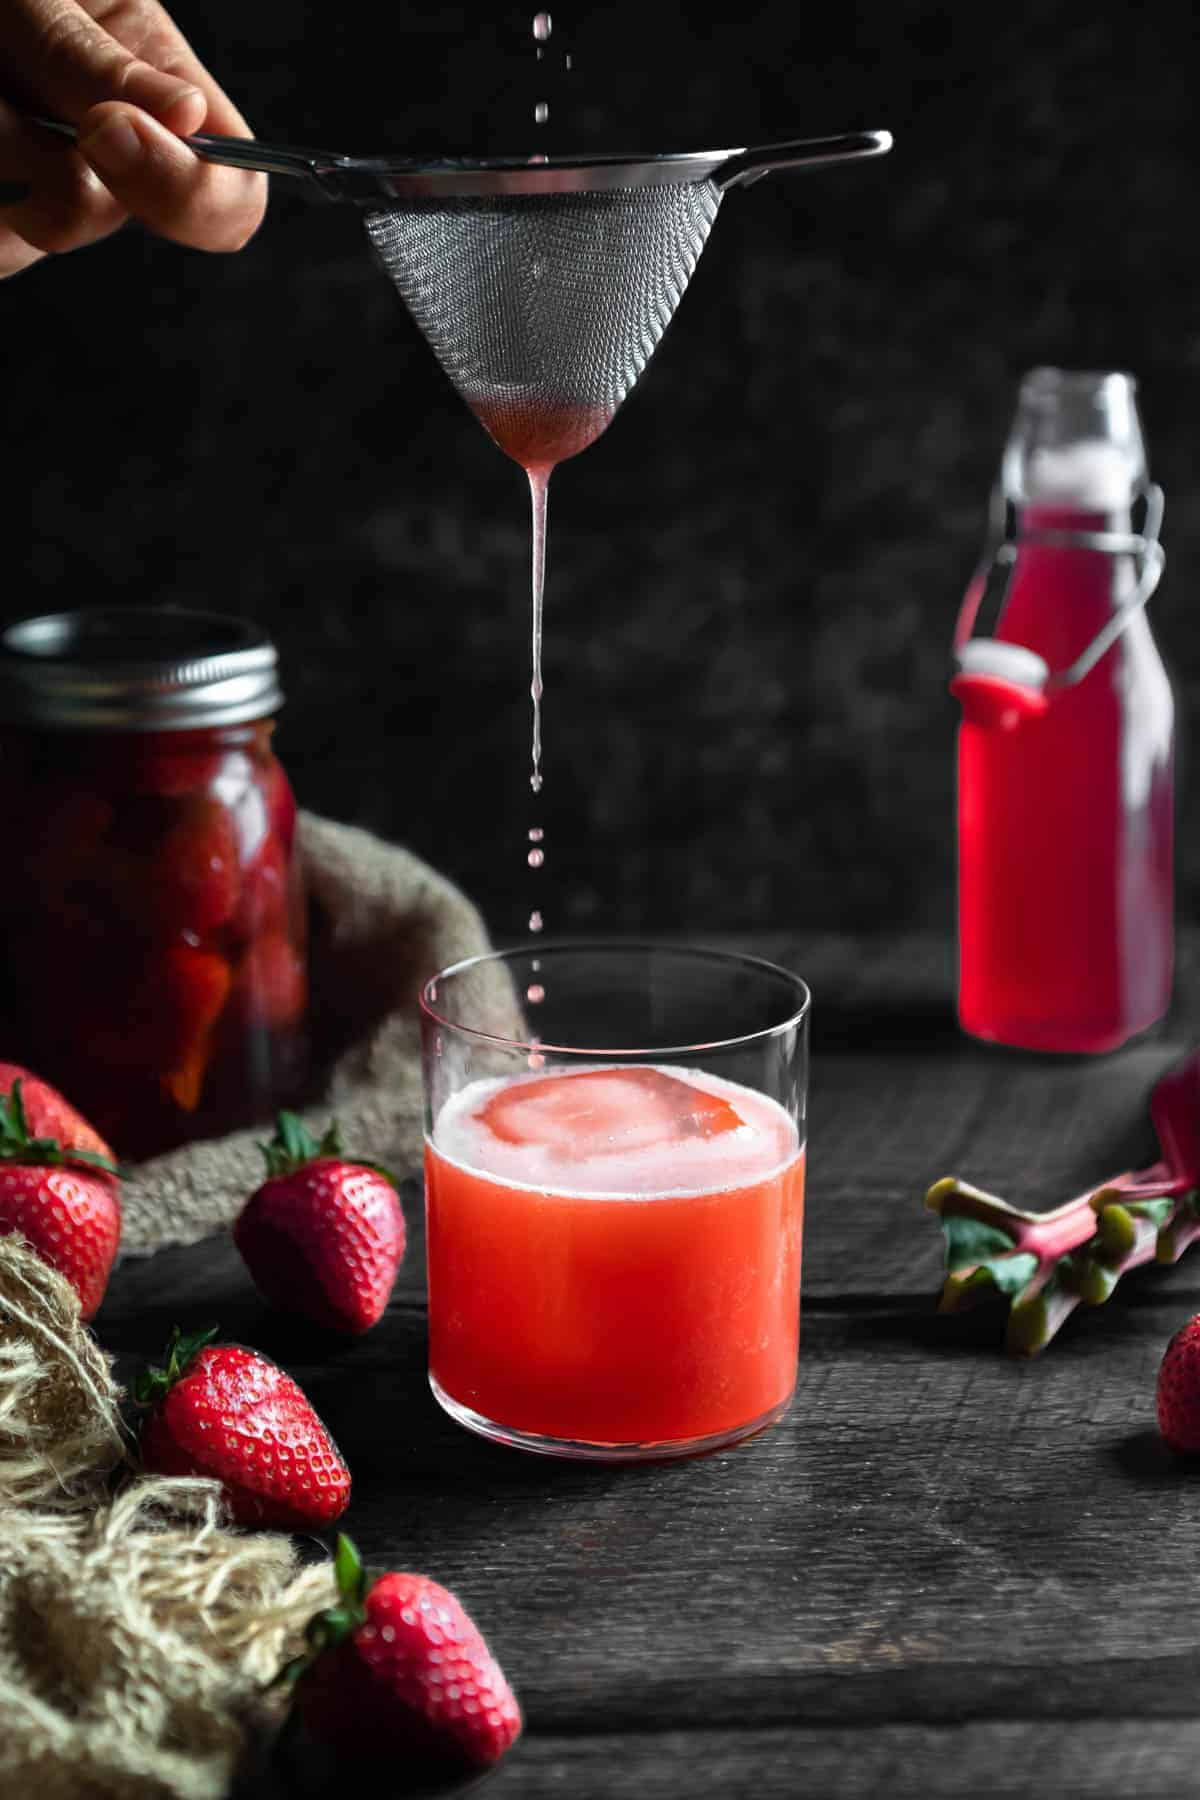 The last drops of a Strawberry Rhubarb Whiskey Sour being poured through a tea strainer into a rocks glass. A jar of strawberry infused whiskey with a burlap cloth, fresh strawberries and a bottle of rhubarb syrup are in the background.